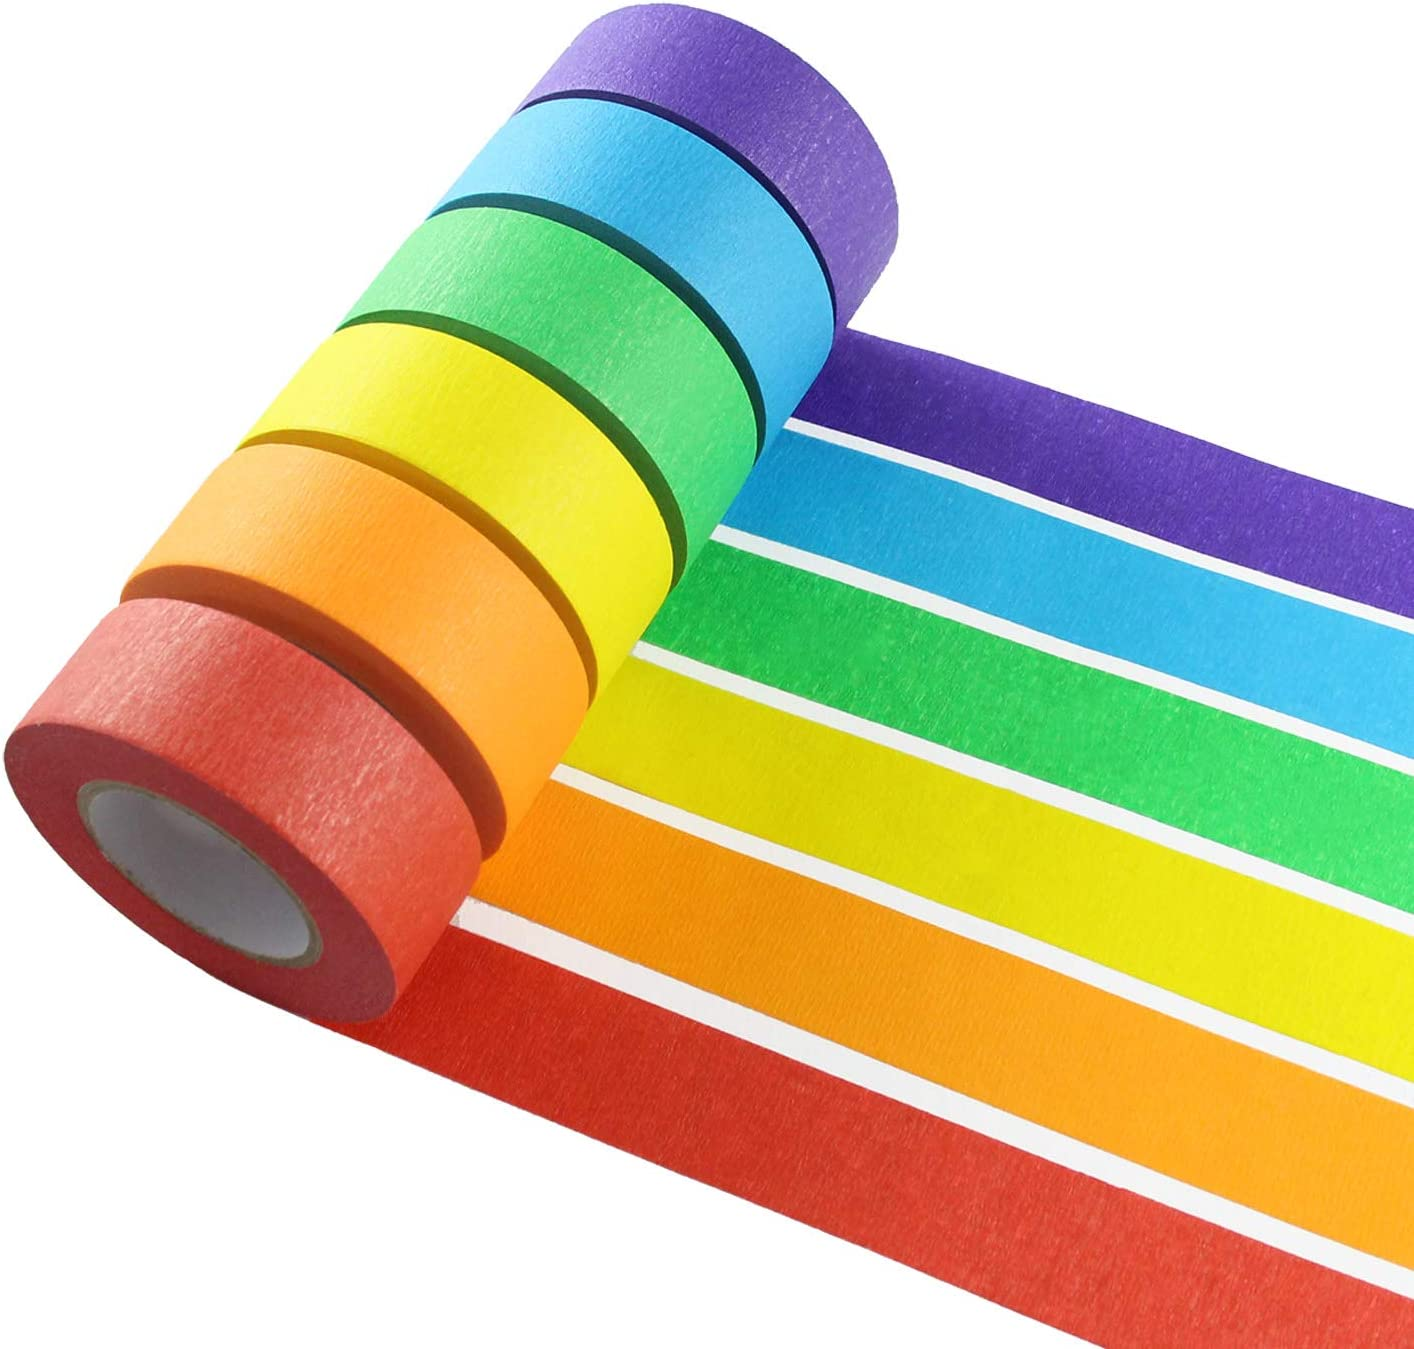 Colored Masking Tape, 6 Pieces 1 Inch x 22 Yard Rainbow Masking Tape Labeling Tape, Assorted Color Coded & Kids DIY Art Supplies, Home Decoration, Office Supplies